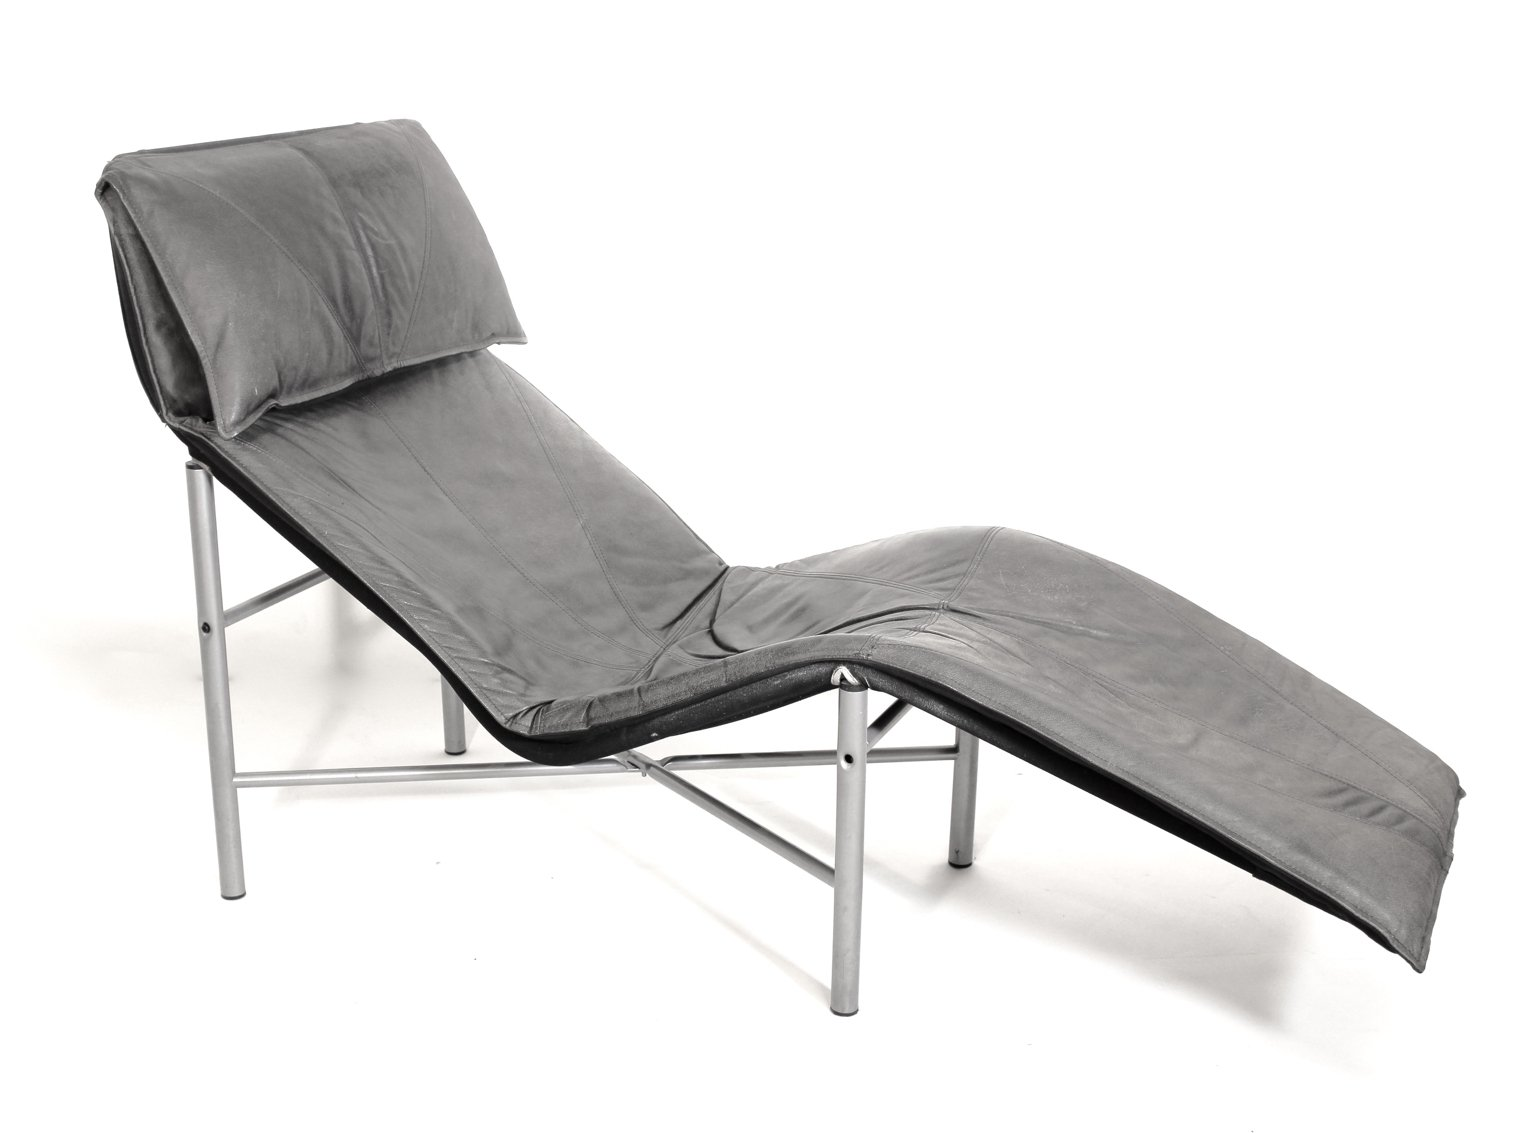 Chaise Longue Suisse Leather Chaise Longue By Tord Bjorklund 1970s For Sale At